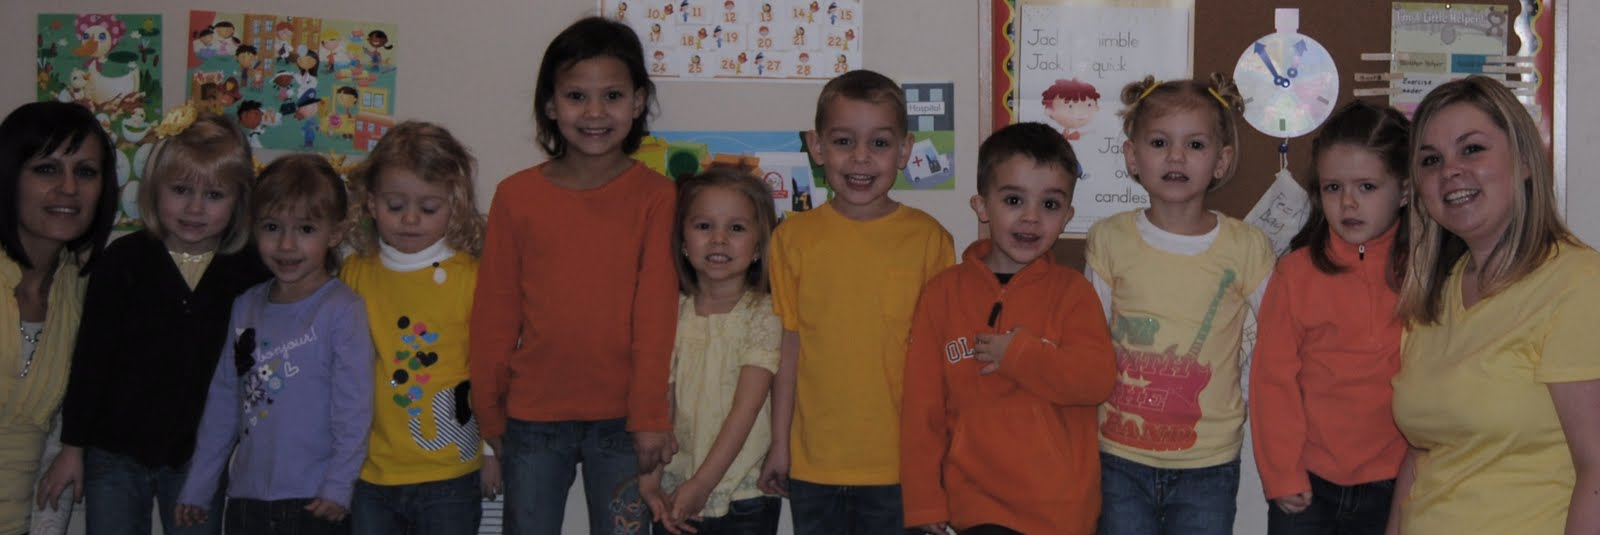 A child s garden day care february